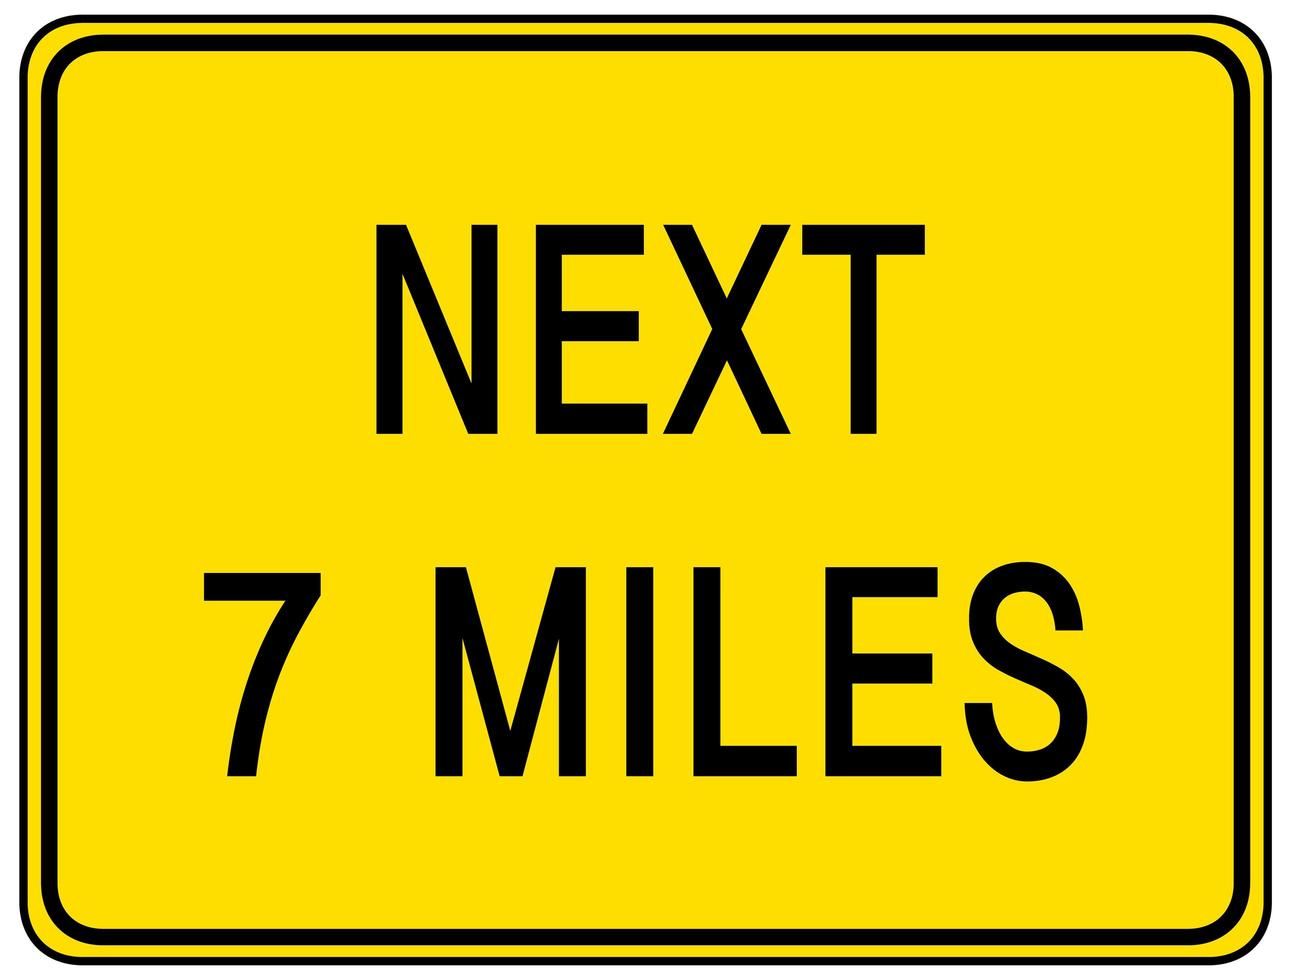 Next 7 miles sign isolated on white background vector